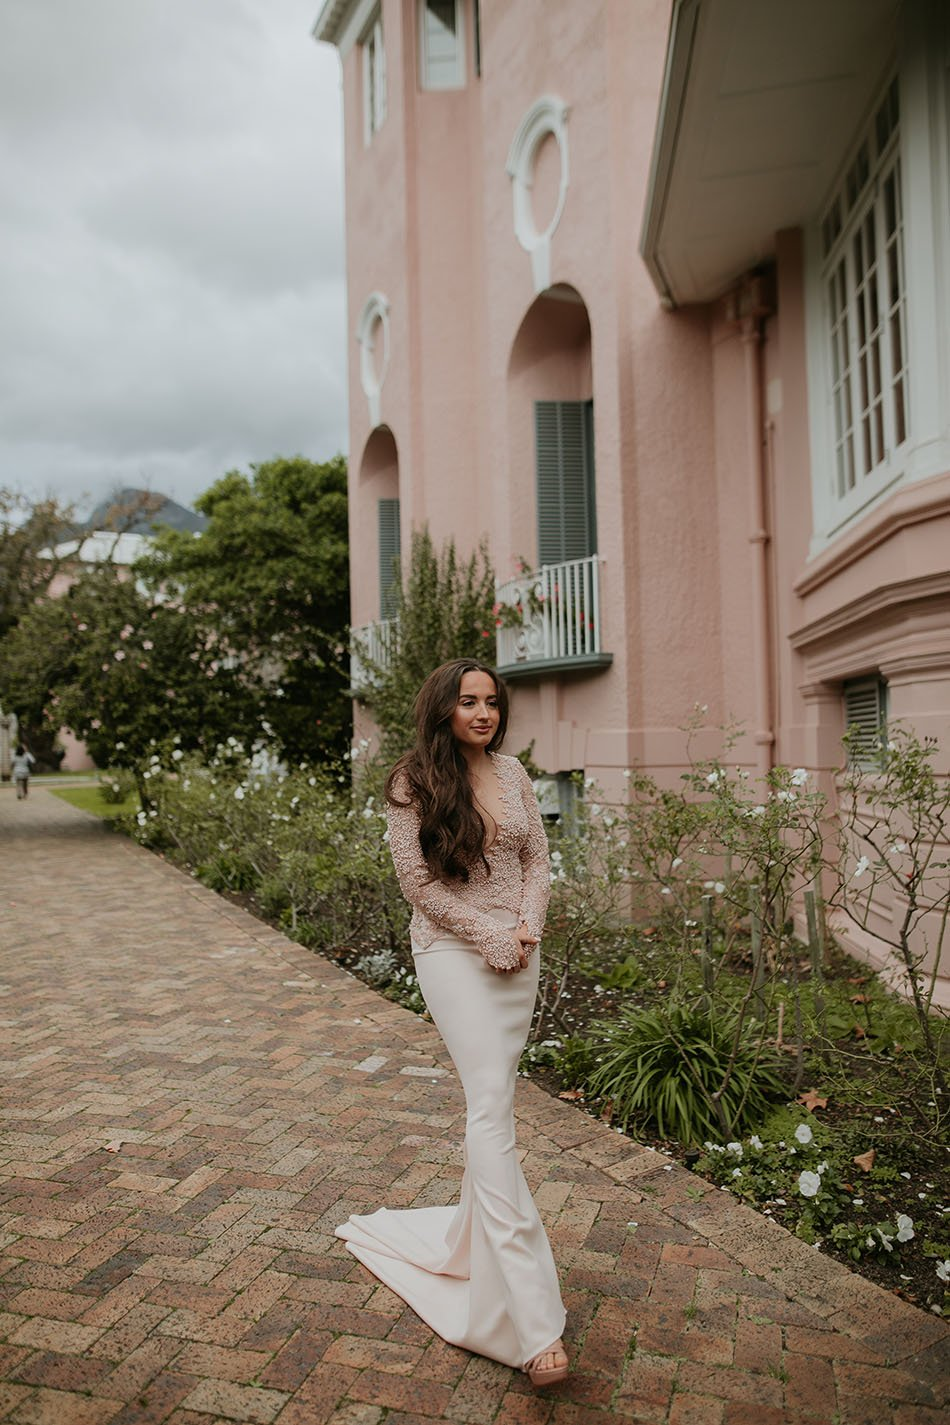 Belmond-Mount-Nelson-Hotel-Portraits-Luxury-Resorts-in-Cape-Town-Cape-Town-Photographer-Duane-Smith-Photographer-Lara-Blog-37.jpg